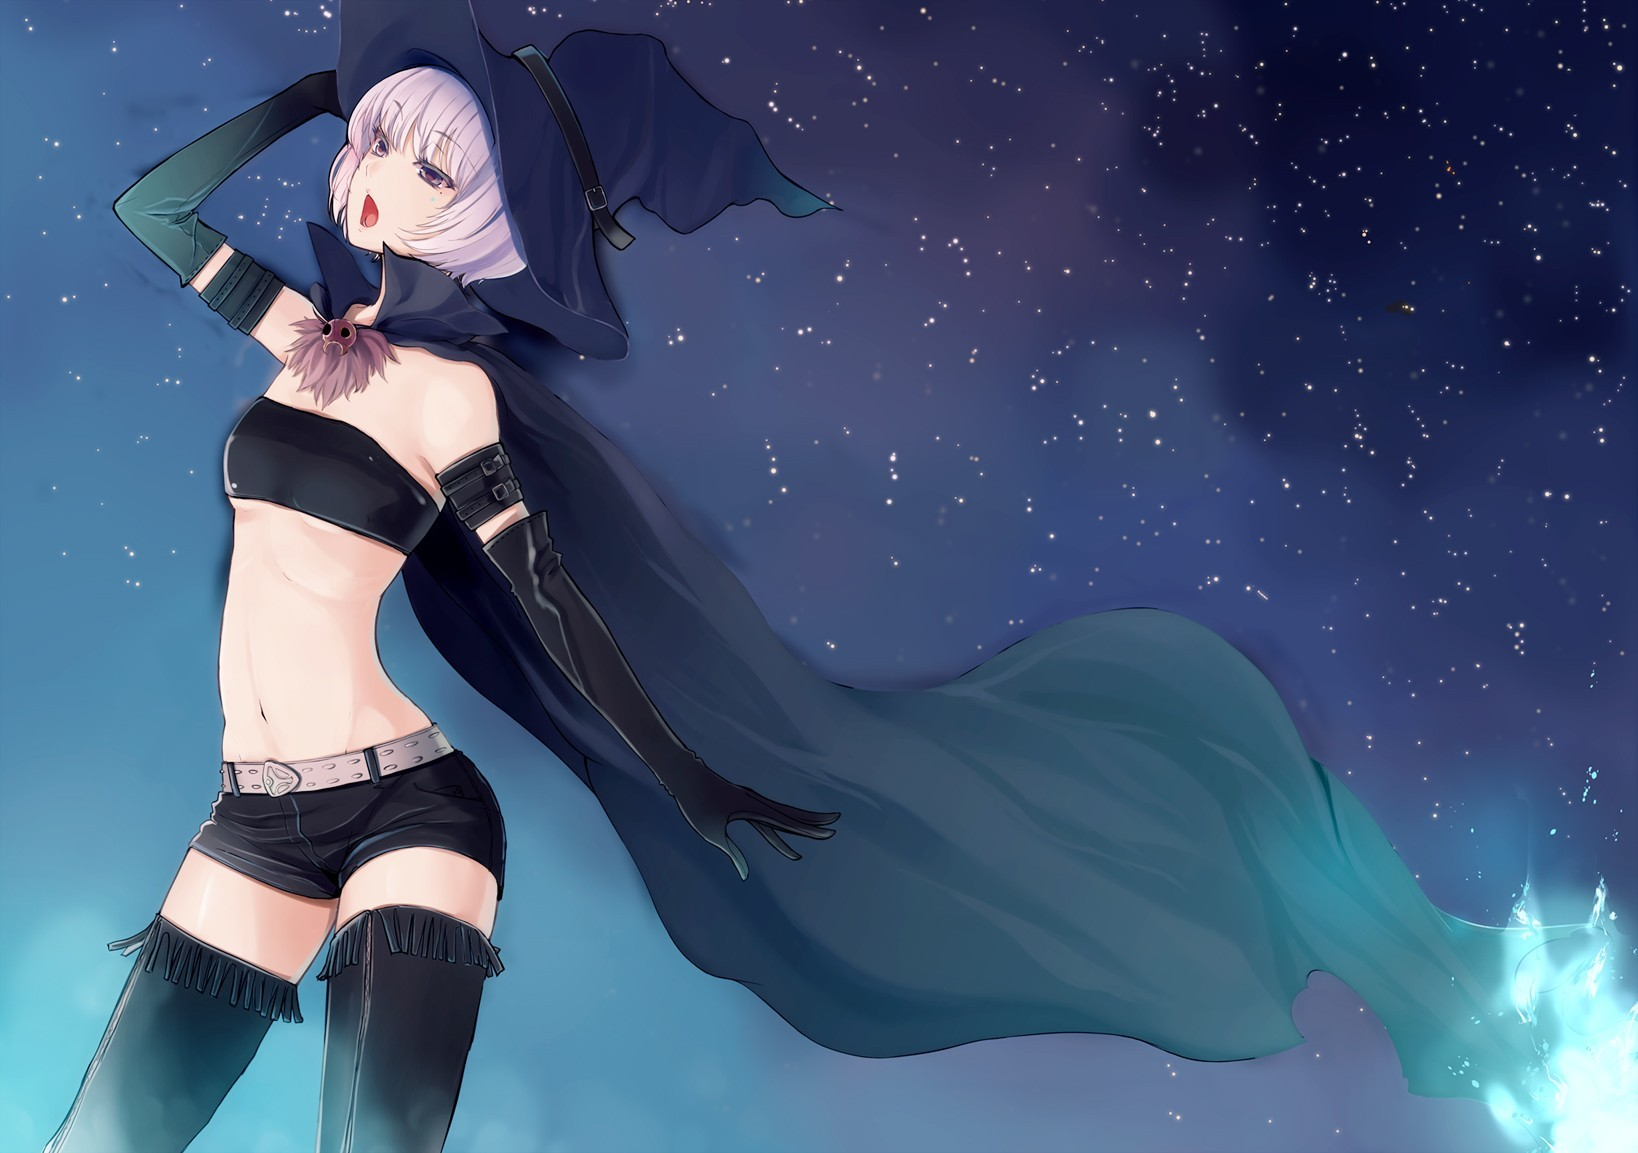 witch thigh highs HD Wallpaper